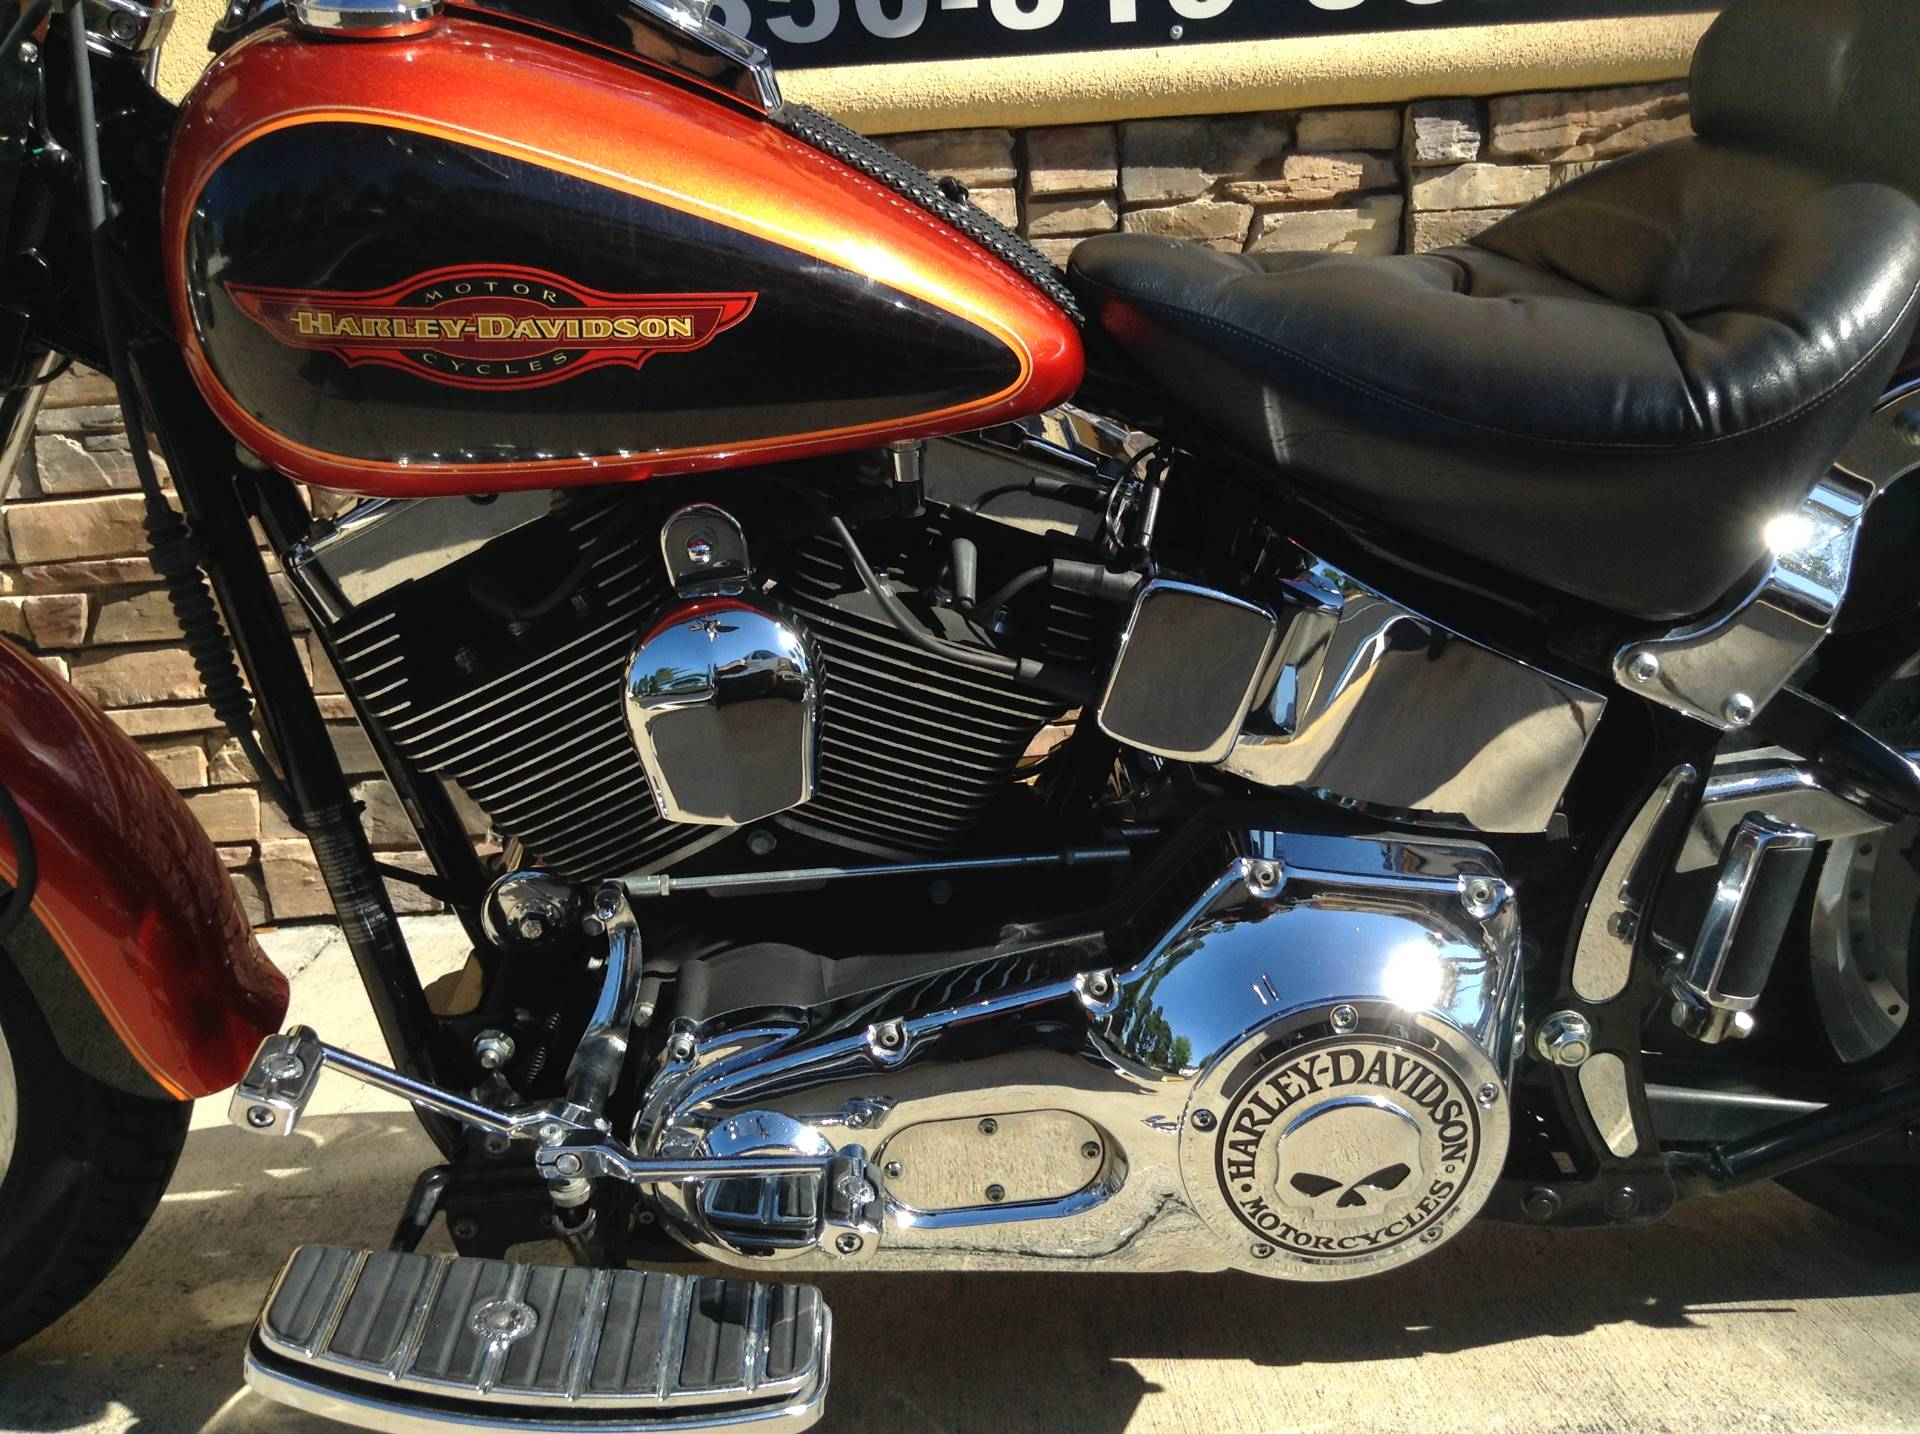 2005 Harley-Davidson FAT BOY in Panama City Beach, Florida